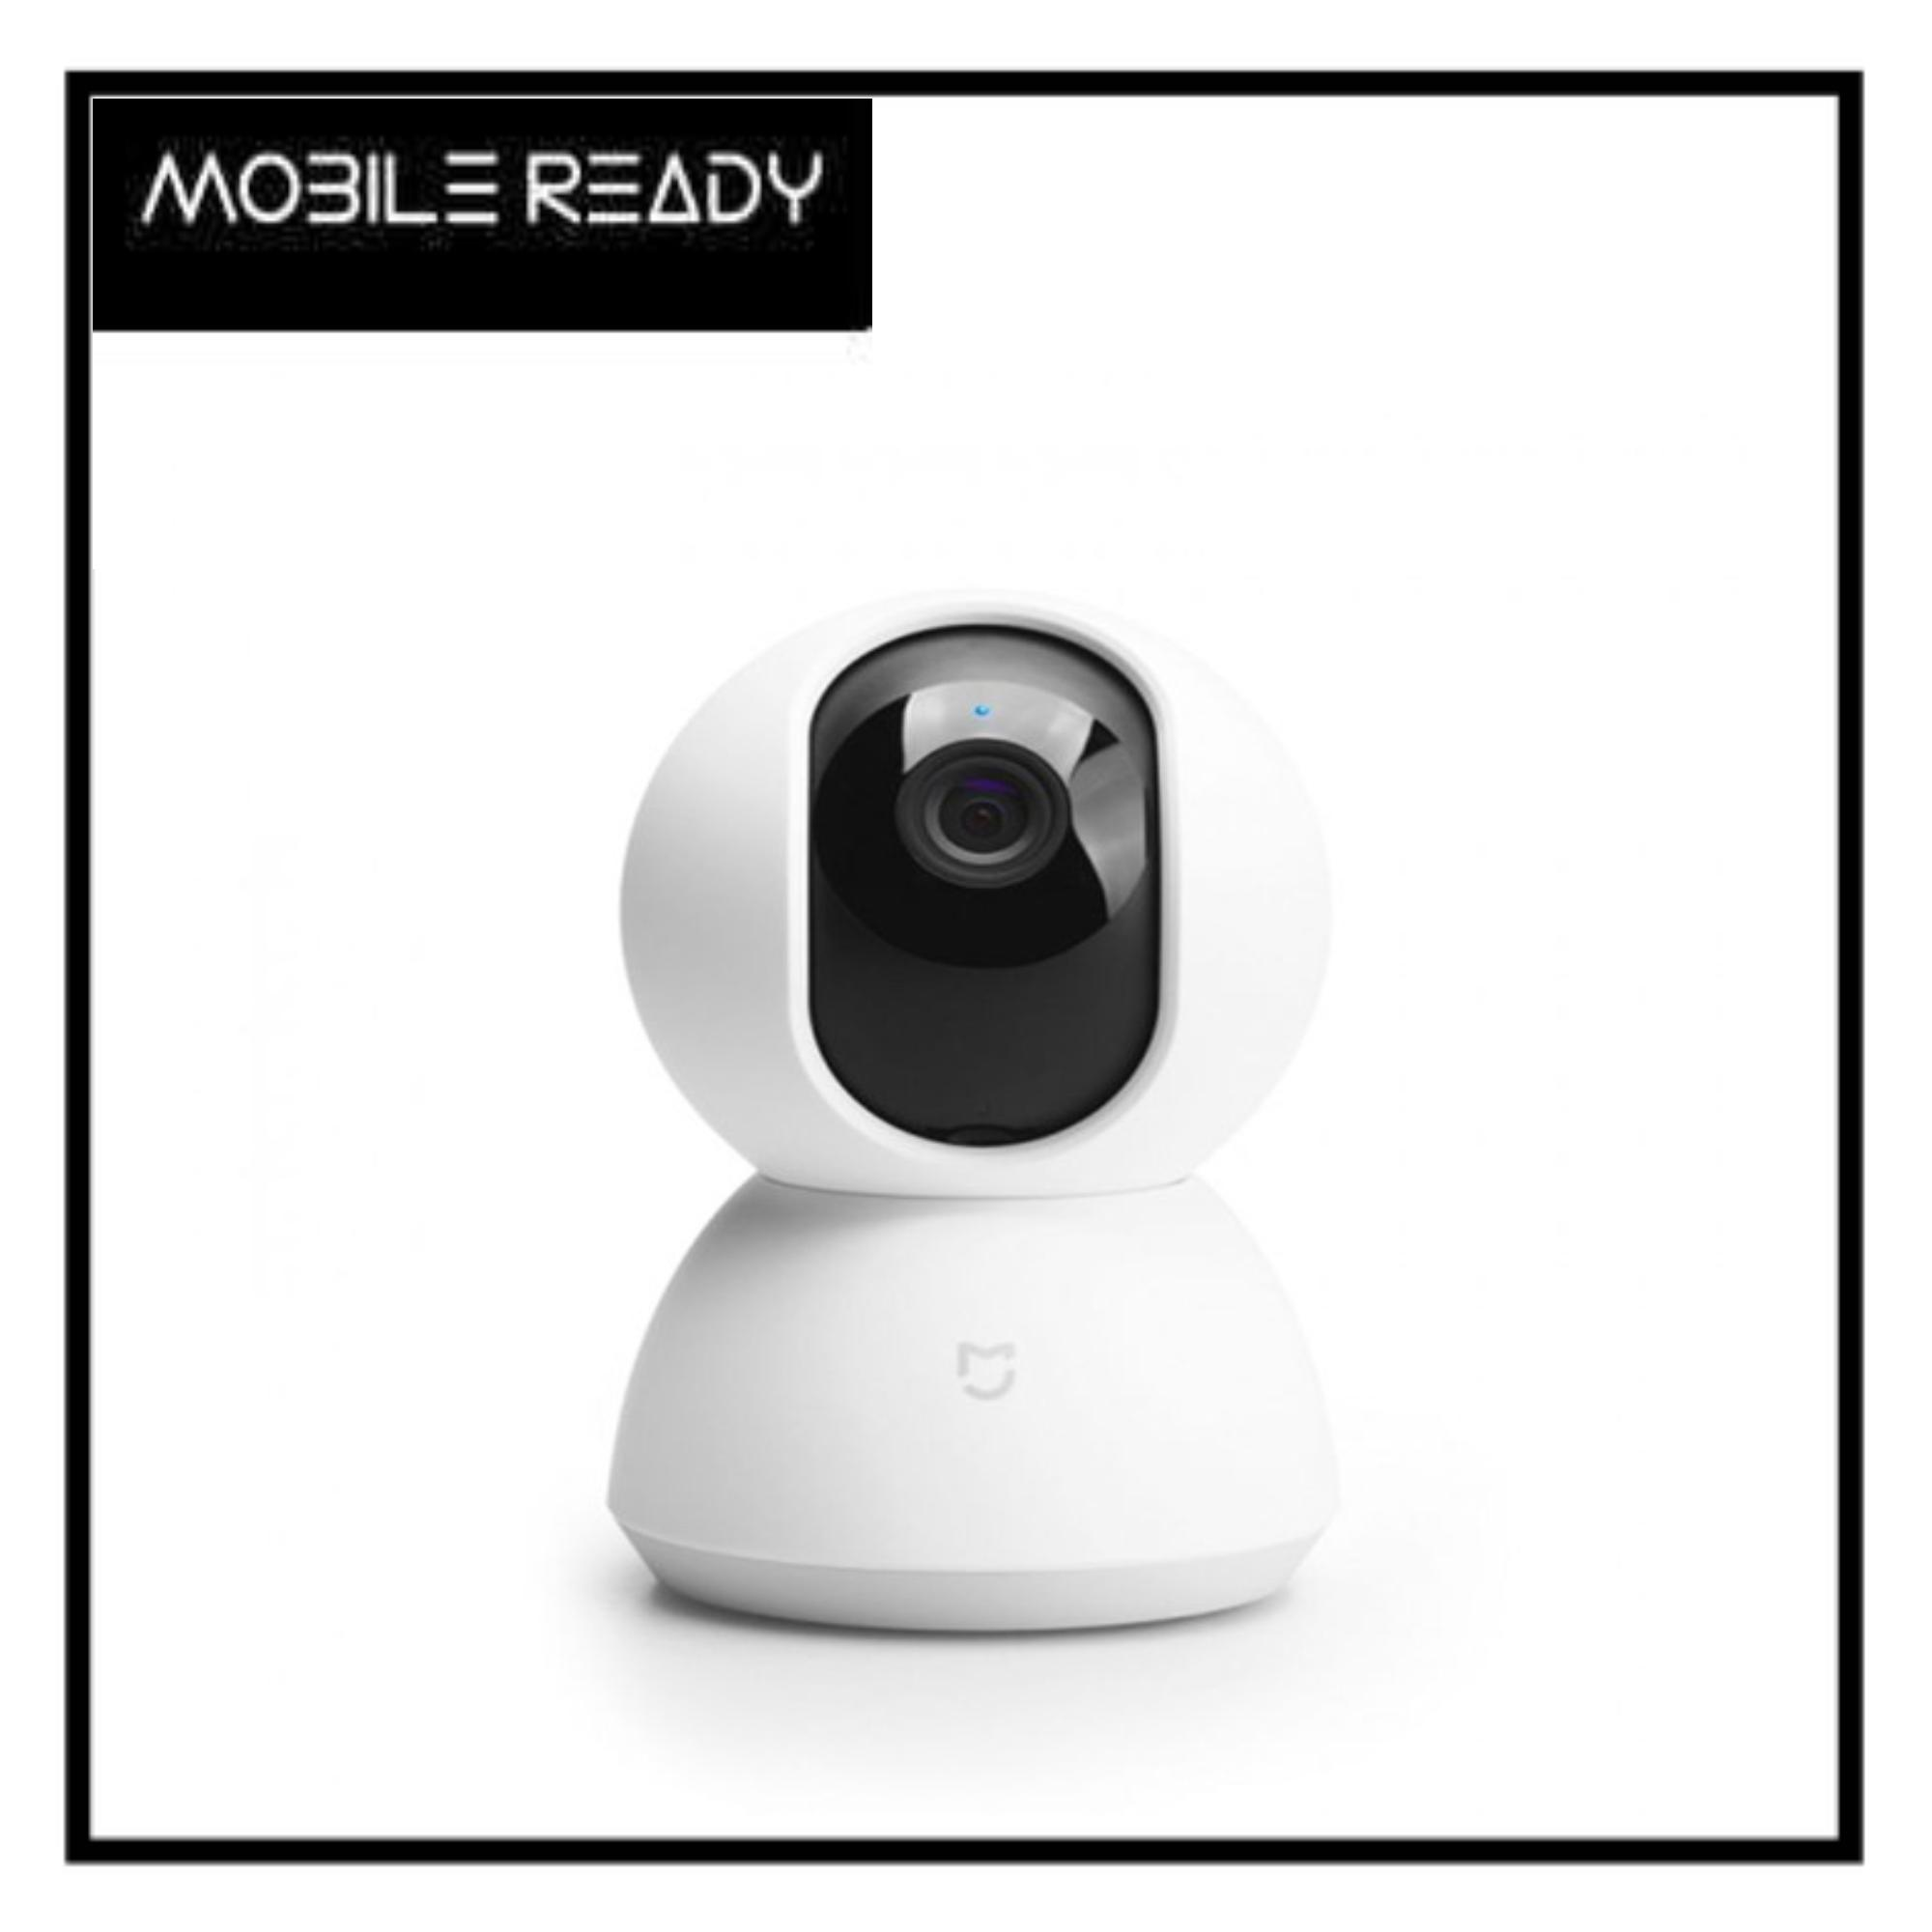 2018 Mi Mijia Smart Ip Home Security Camera 360° 1080p By Mobile Ready.